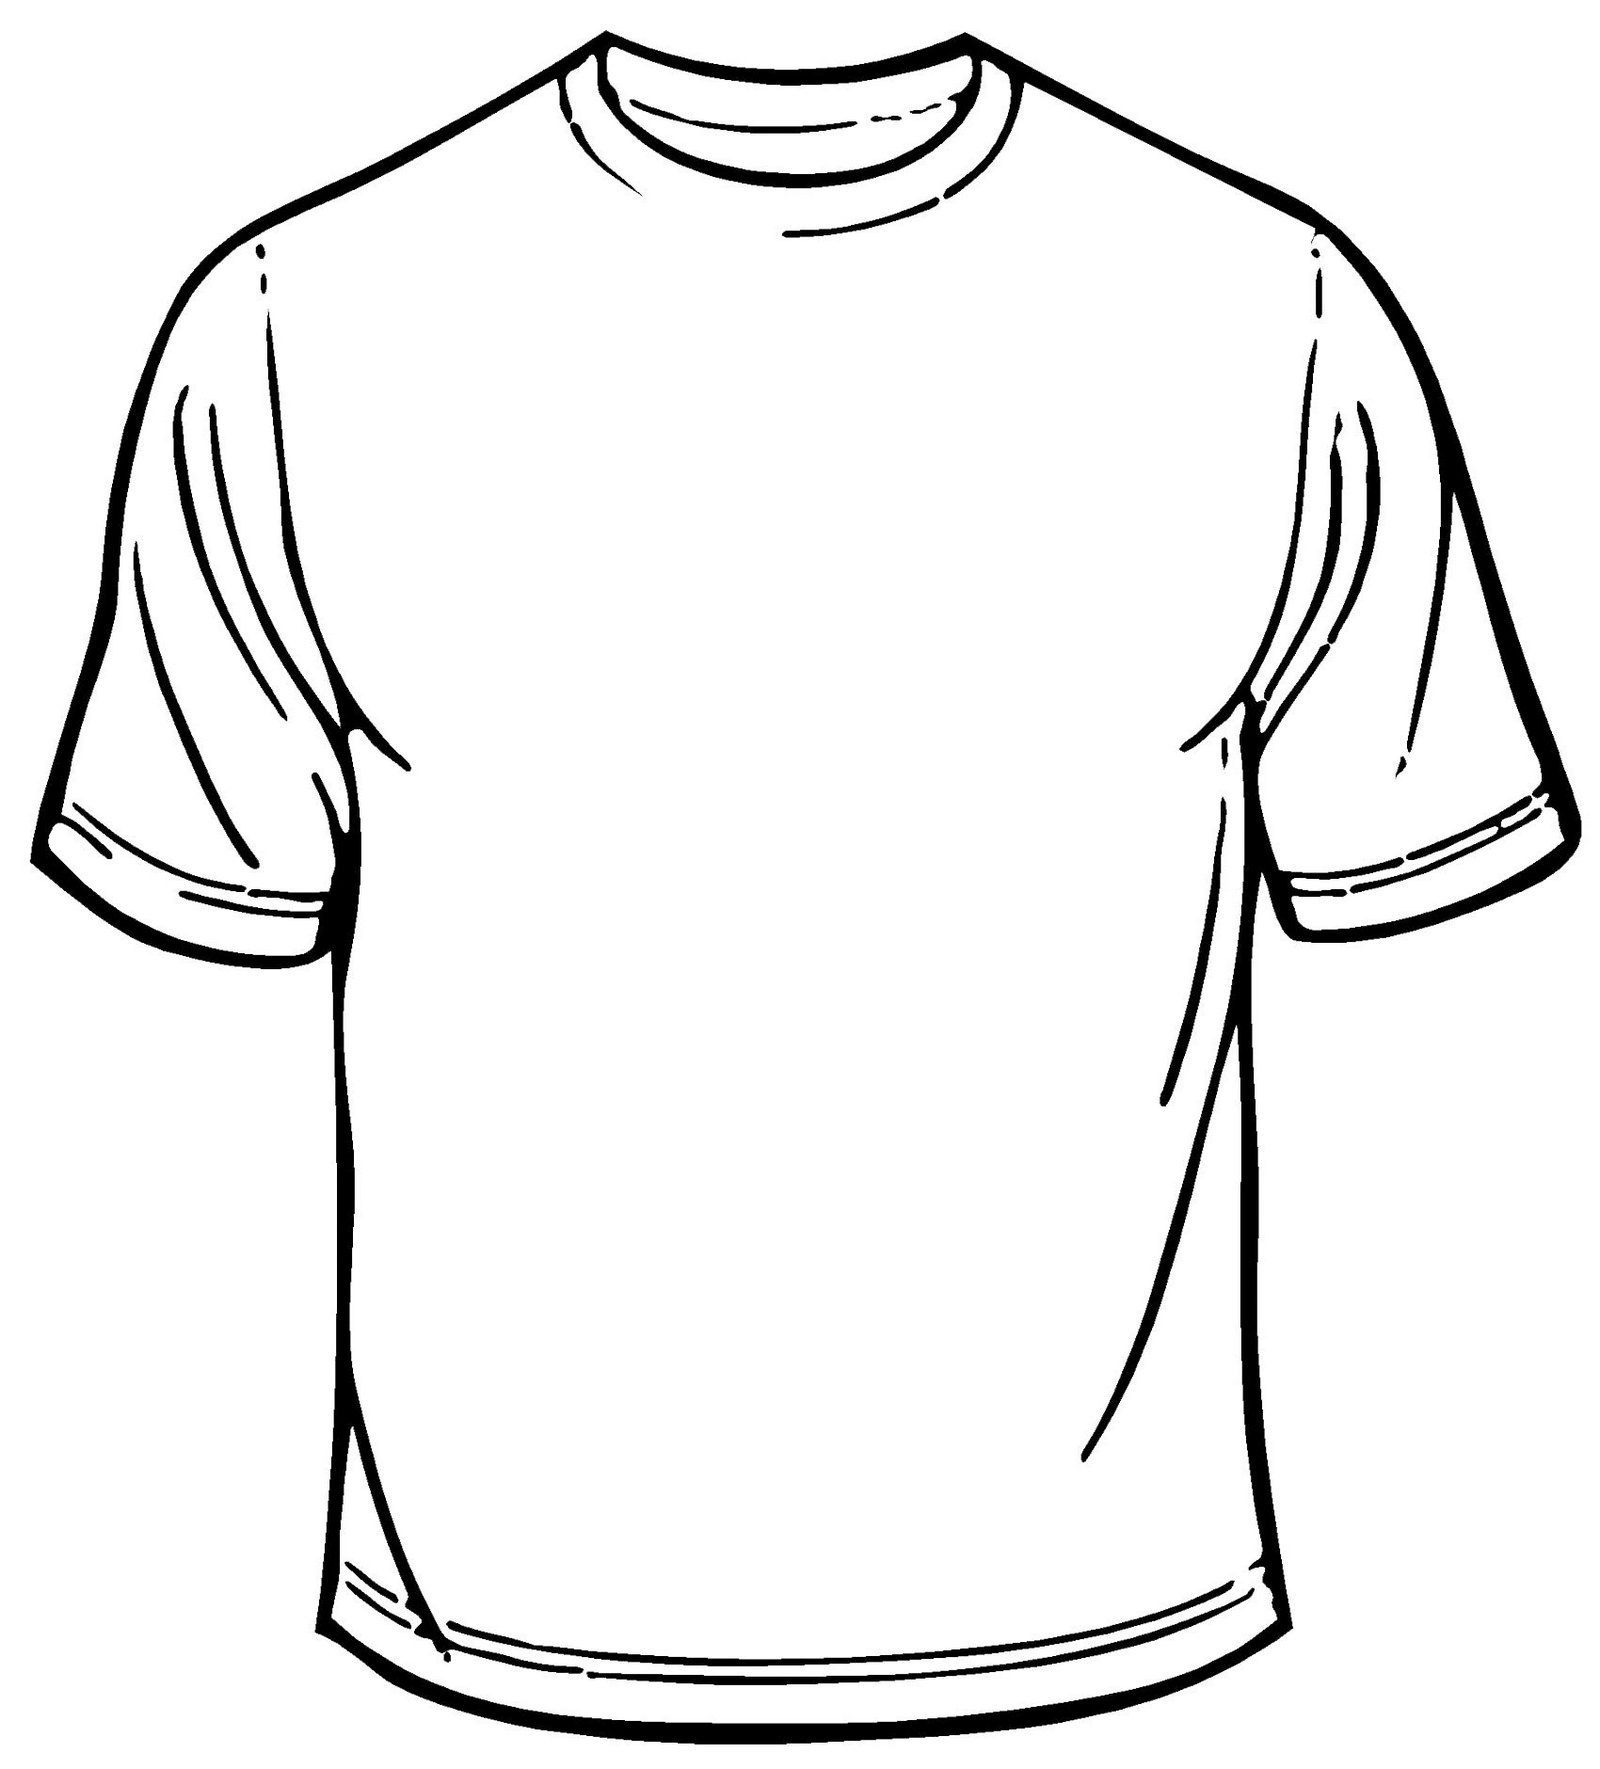 coloring pages for t shirts black t shirt drawing at getdrawingscom free for pages t coloring shirts for